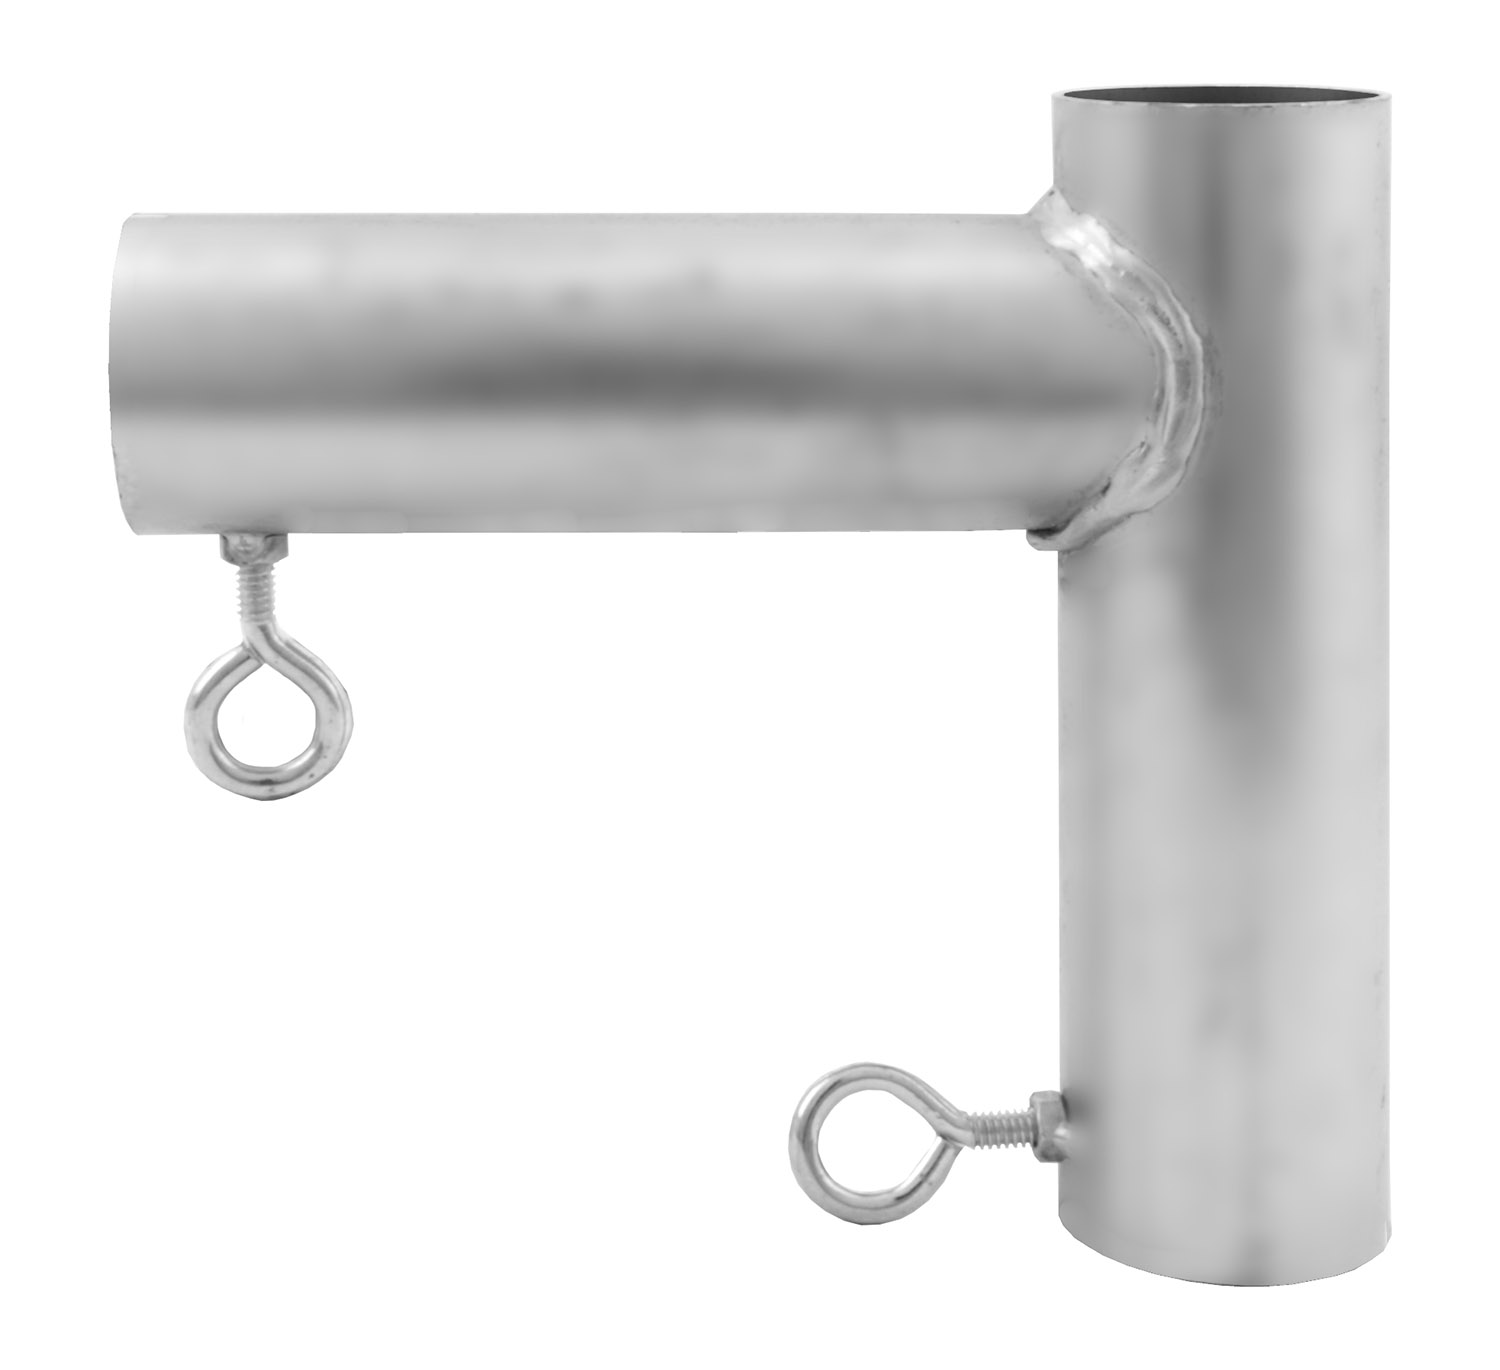 1-7/8 in 3-Way Side Wall Canopy Fitting